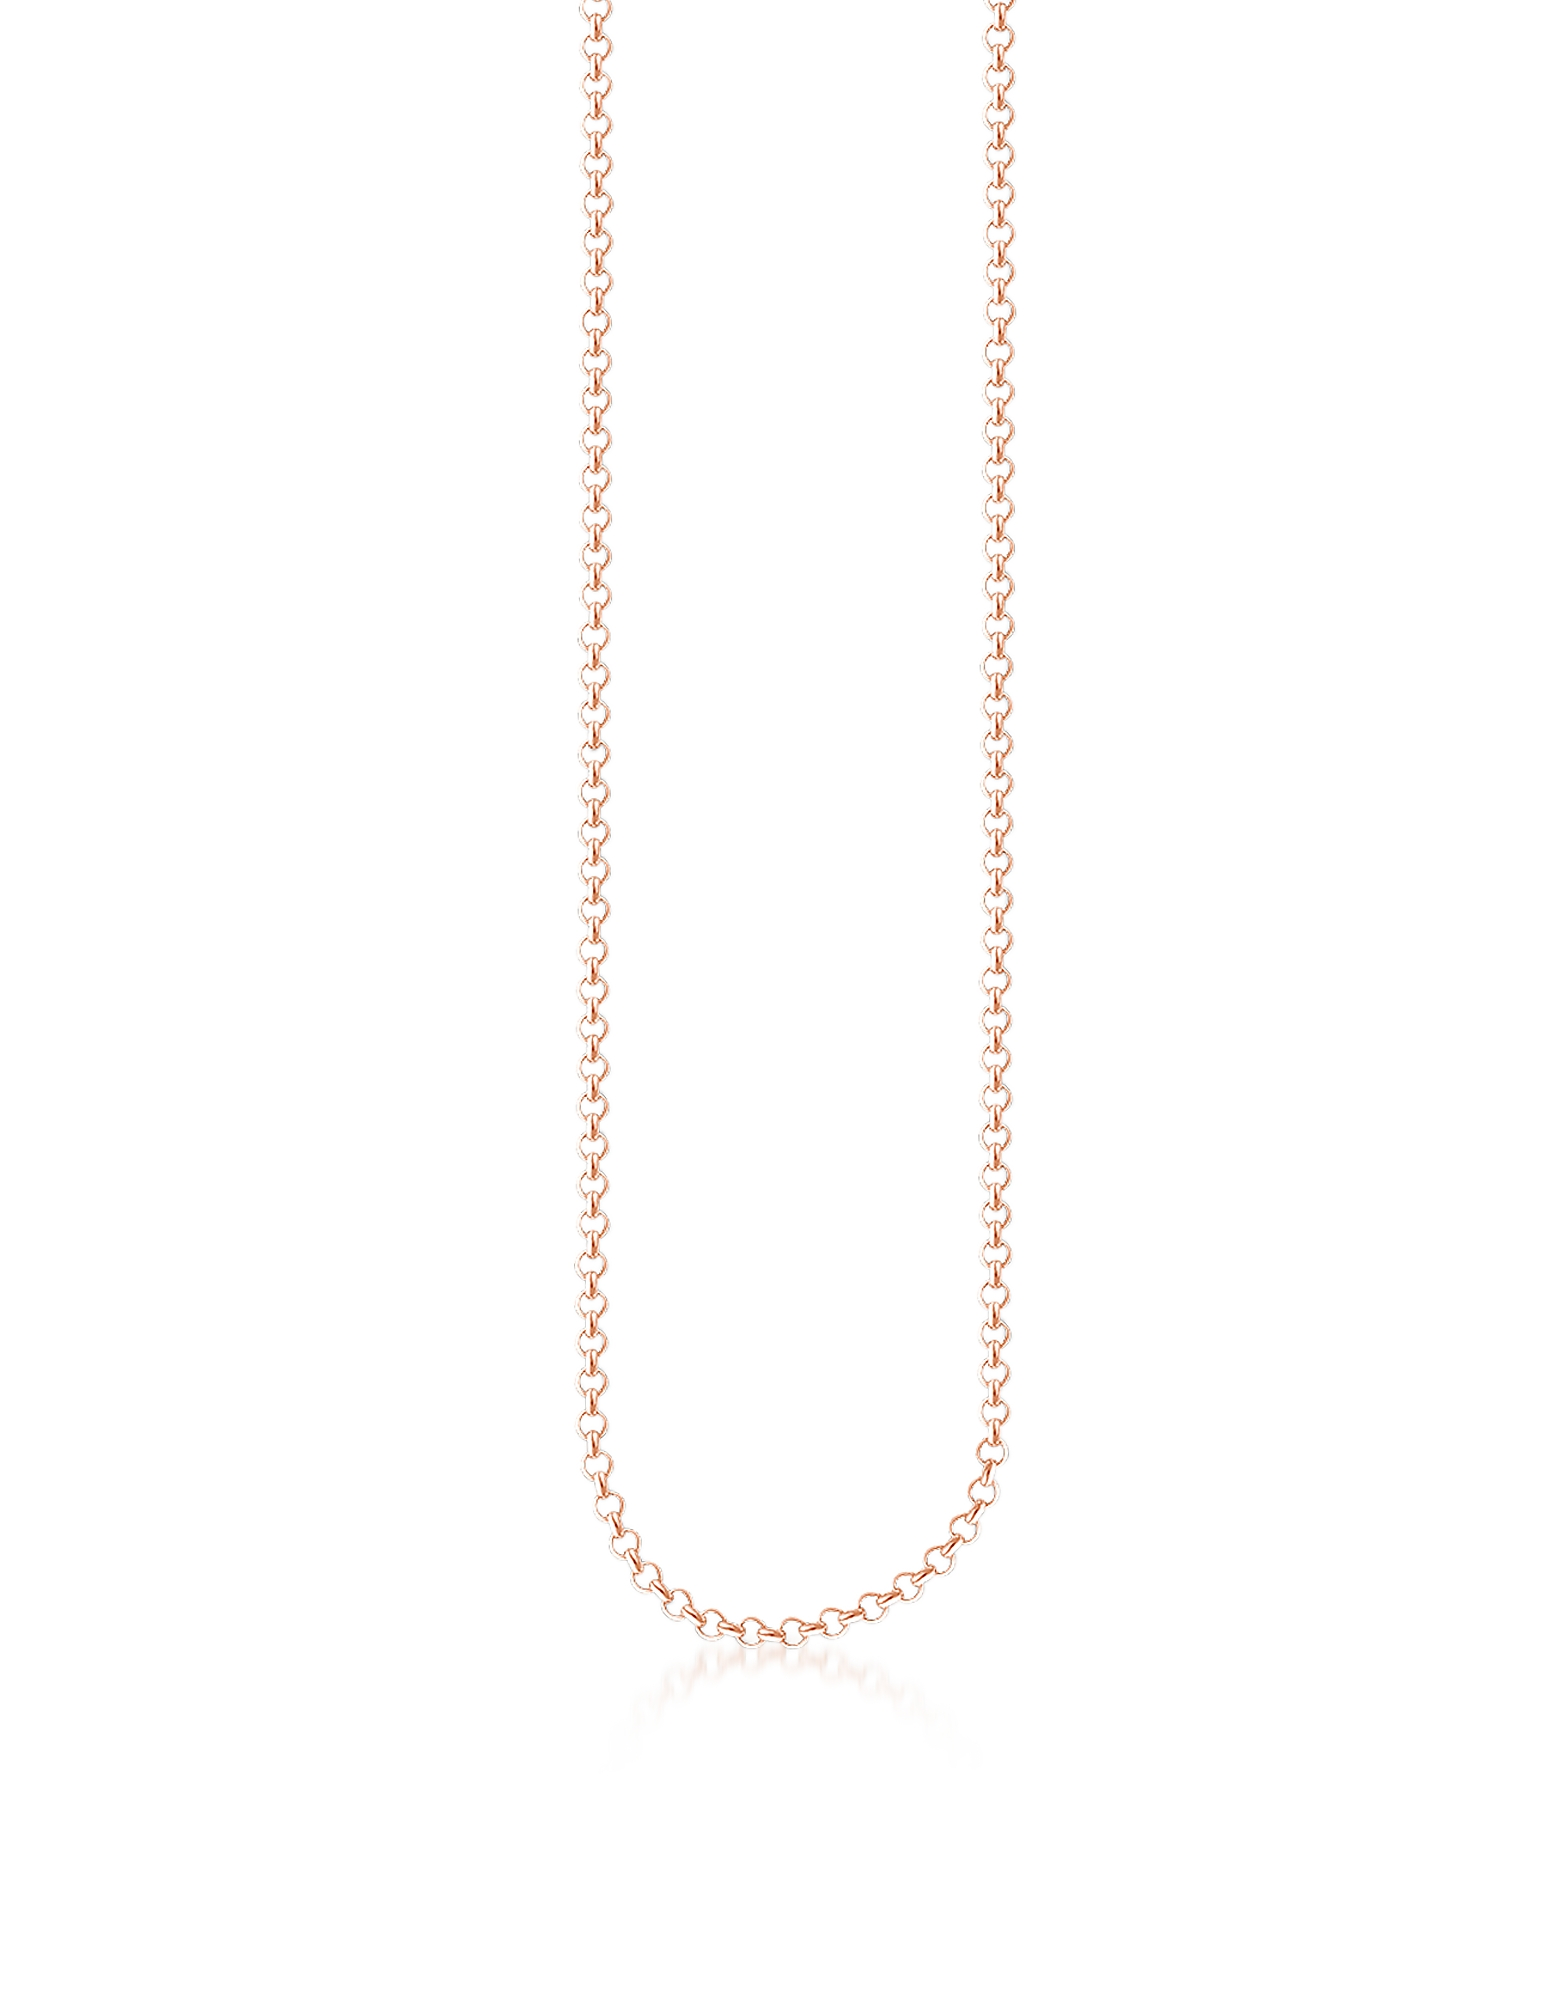 Thomas Sabo Necklaces, Rose Gold Plated Sterling Silver Round Belcher Chain Necklace